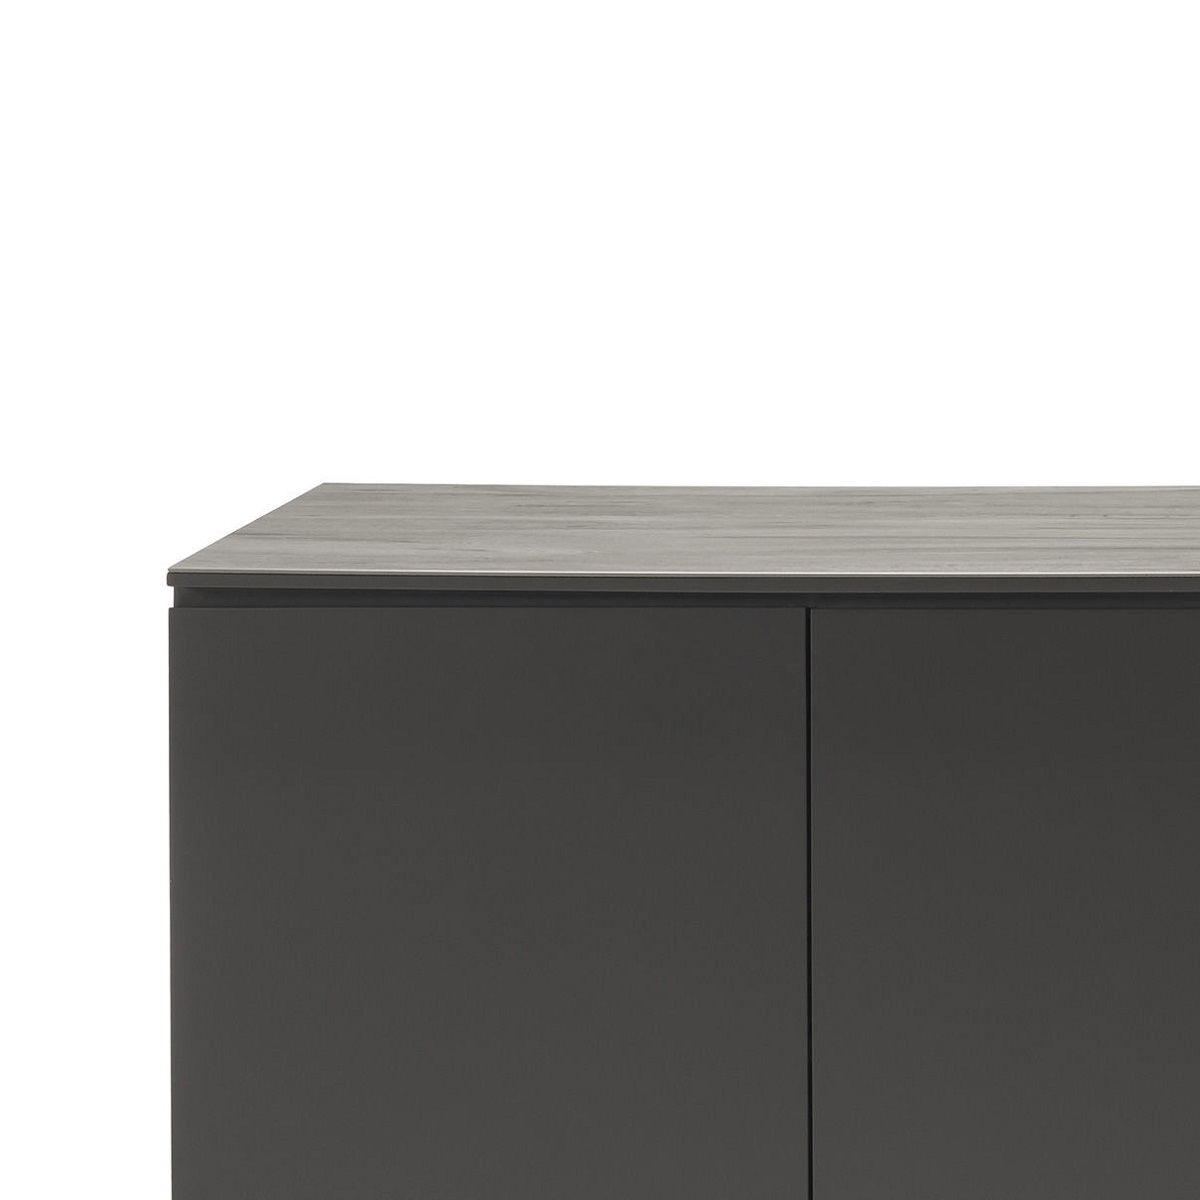 Spartan 4-Door Sideboard